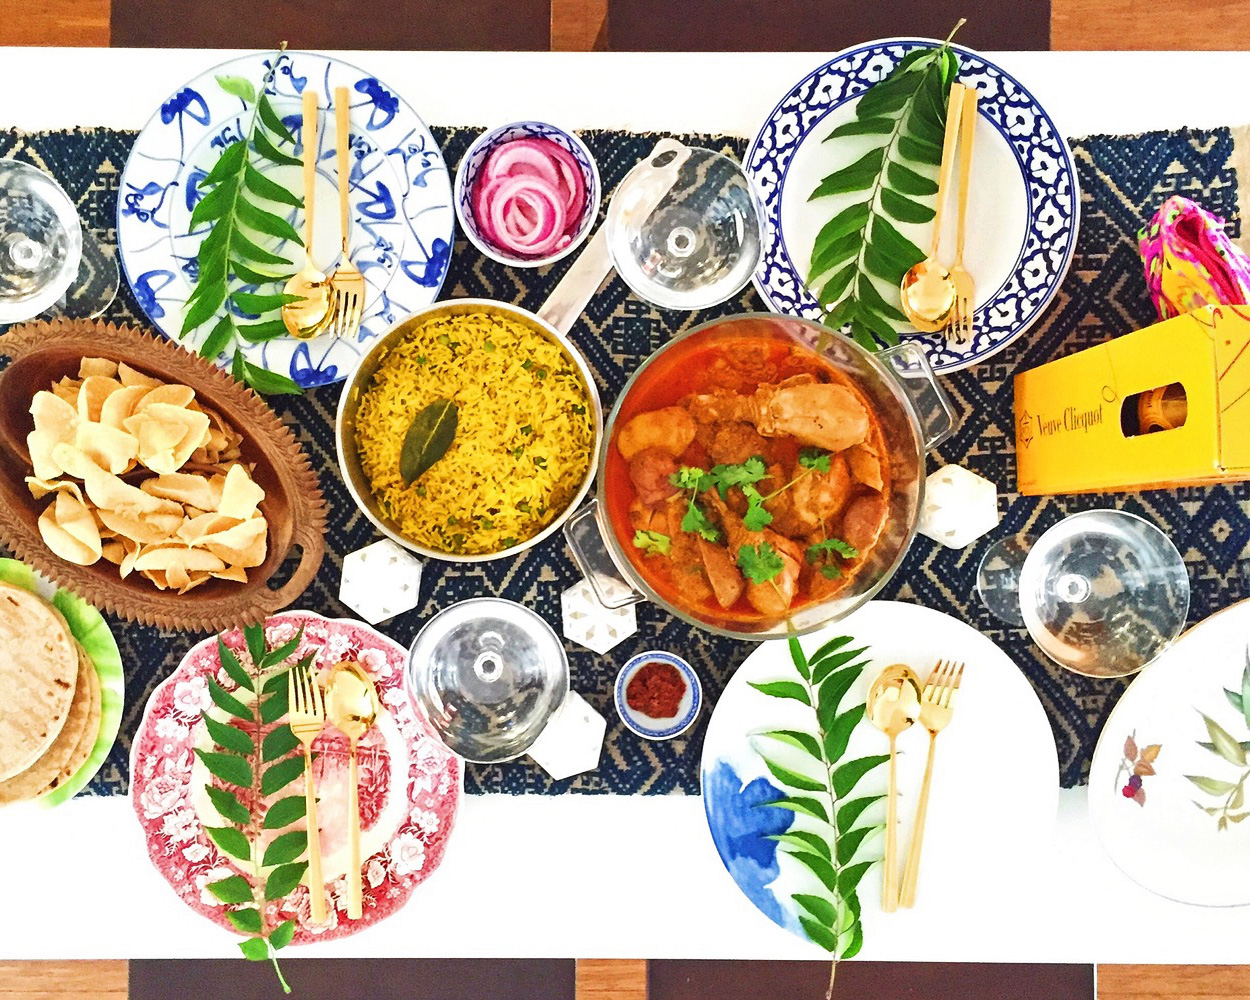 Bombay table spread